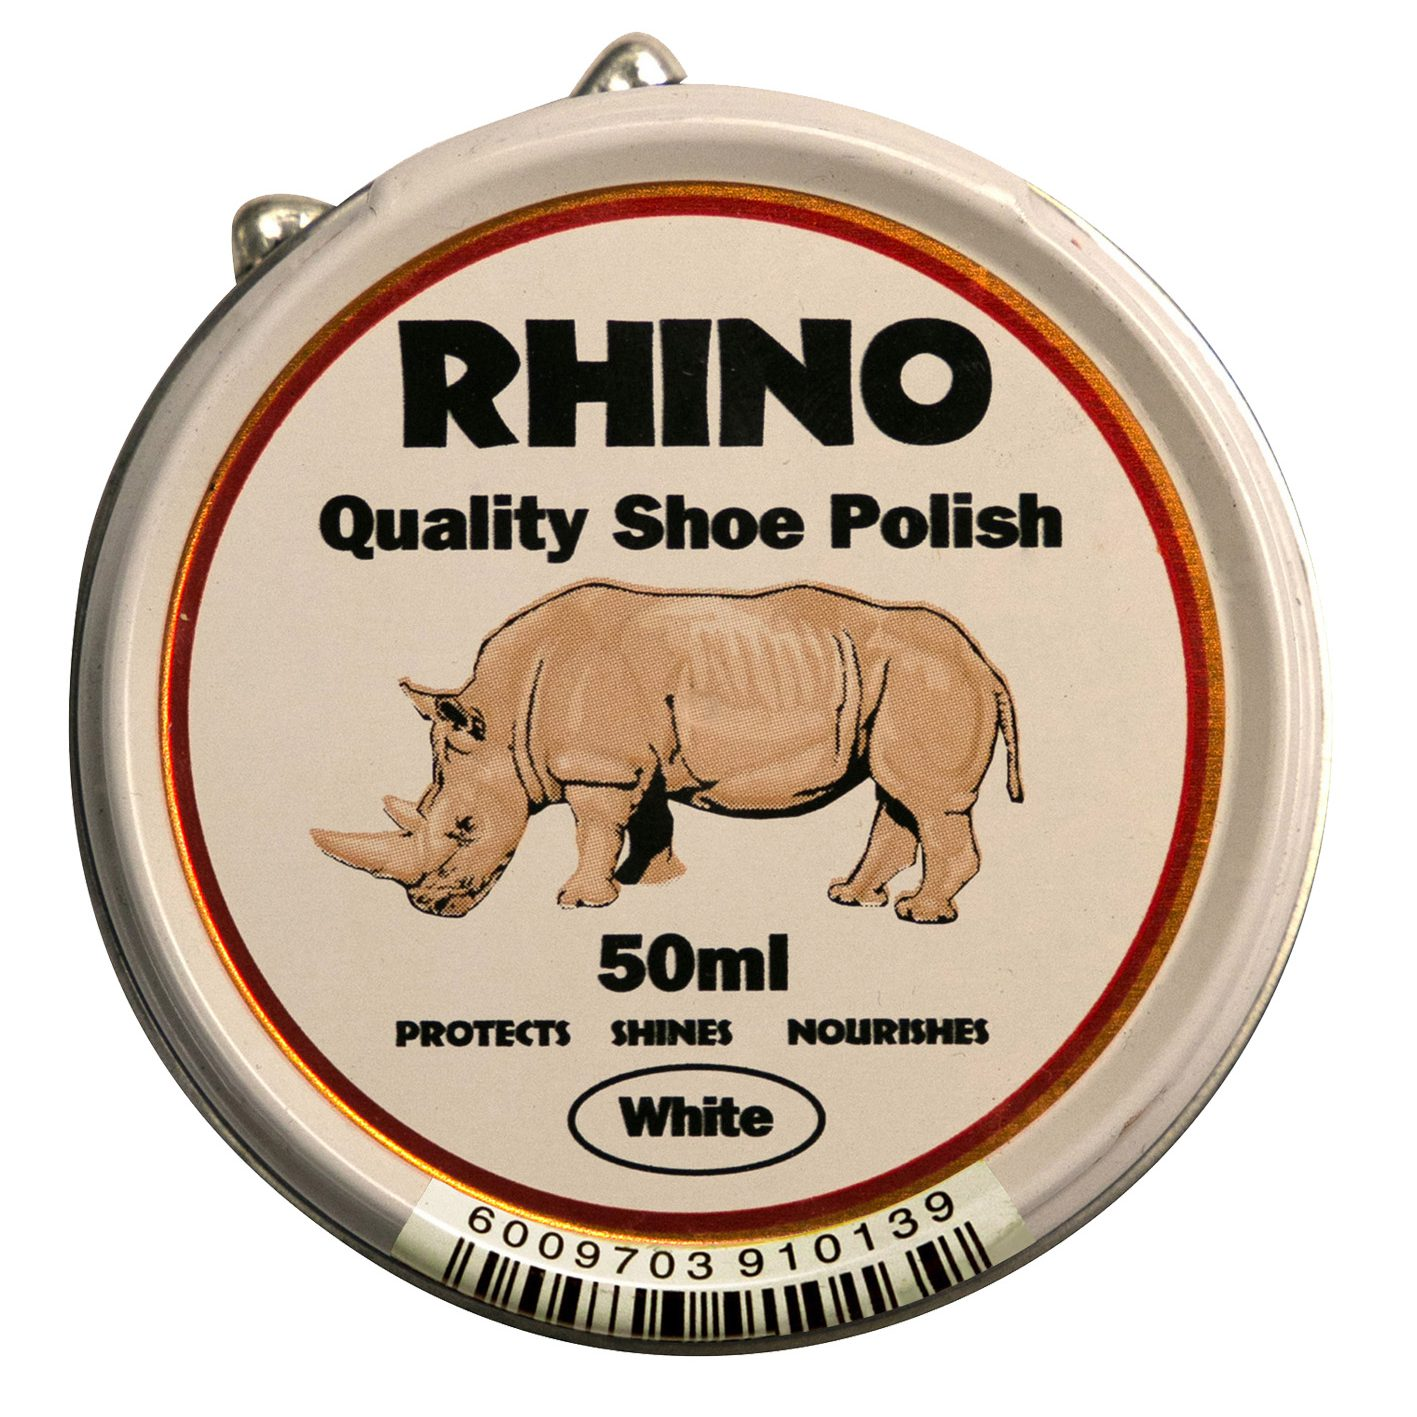 Rhino Shoe Polish White 50ml